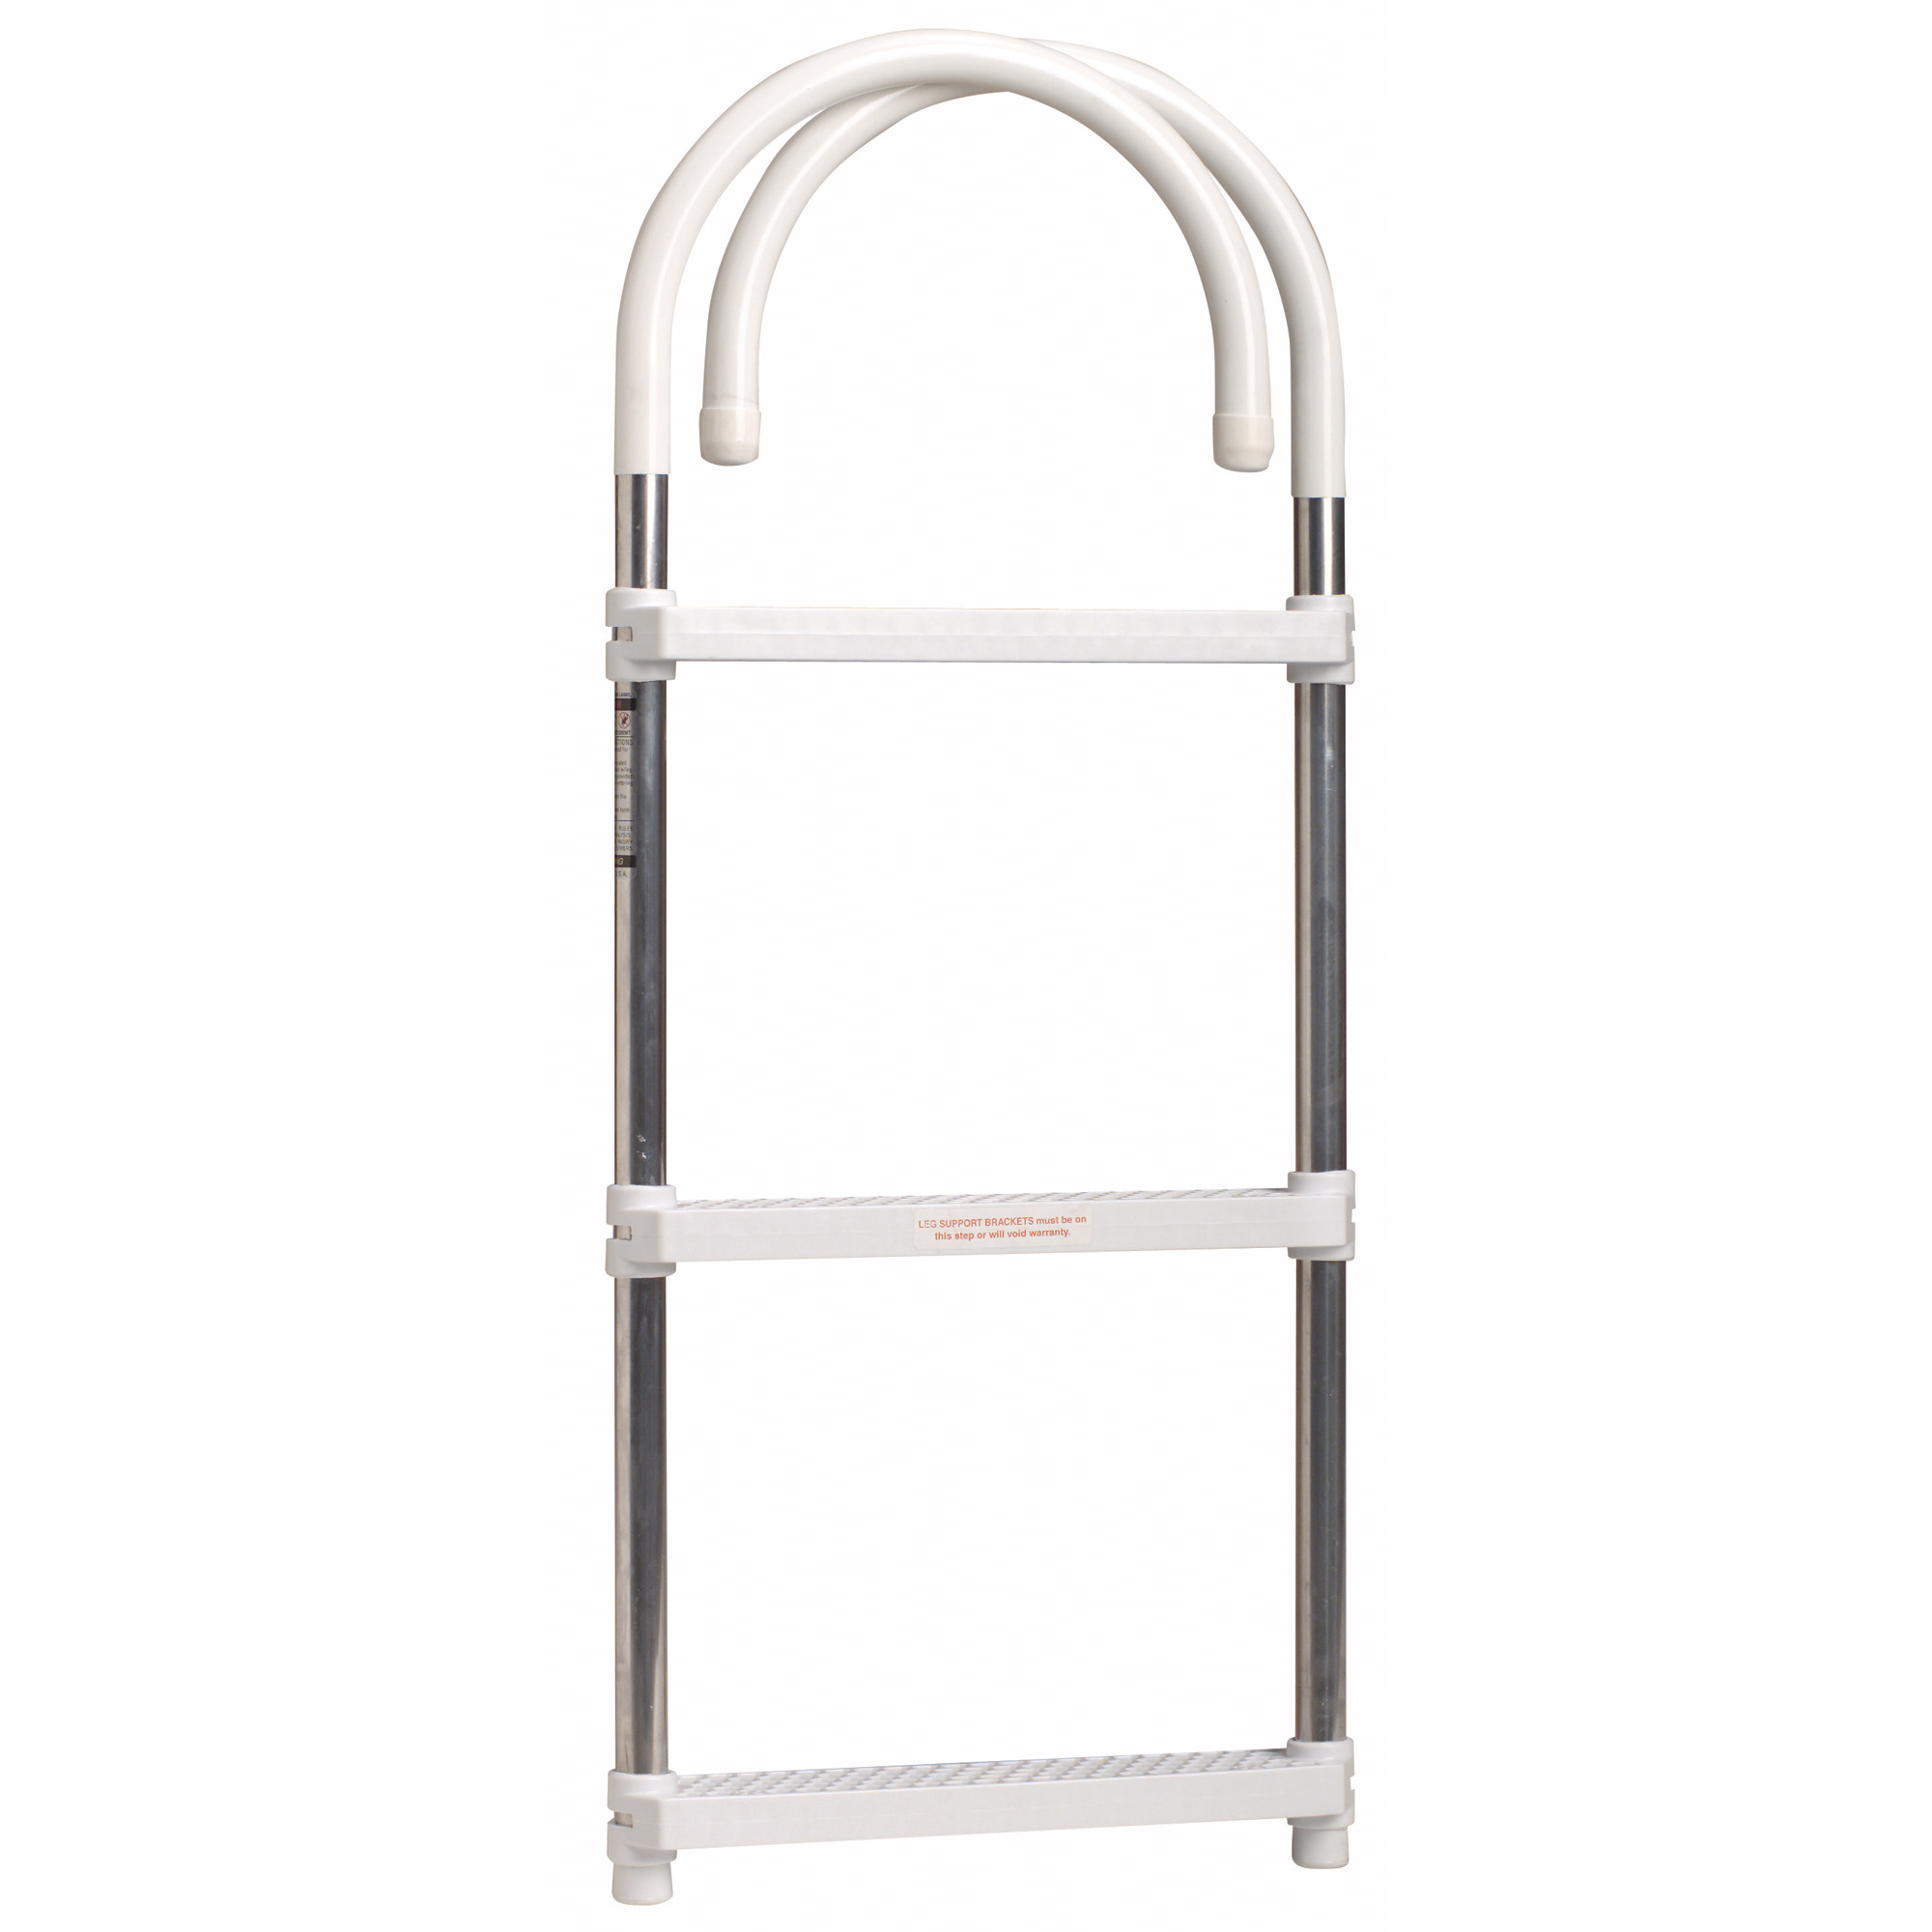 Dotline Gunwale Hook Ladders